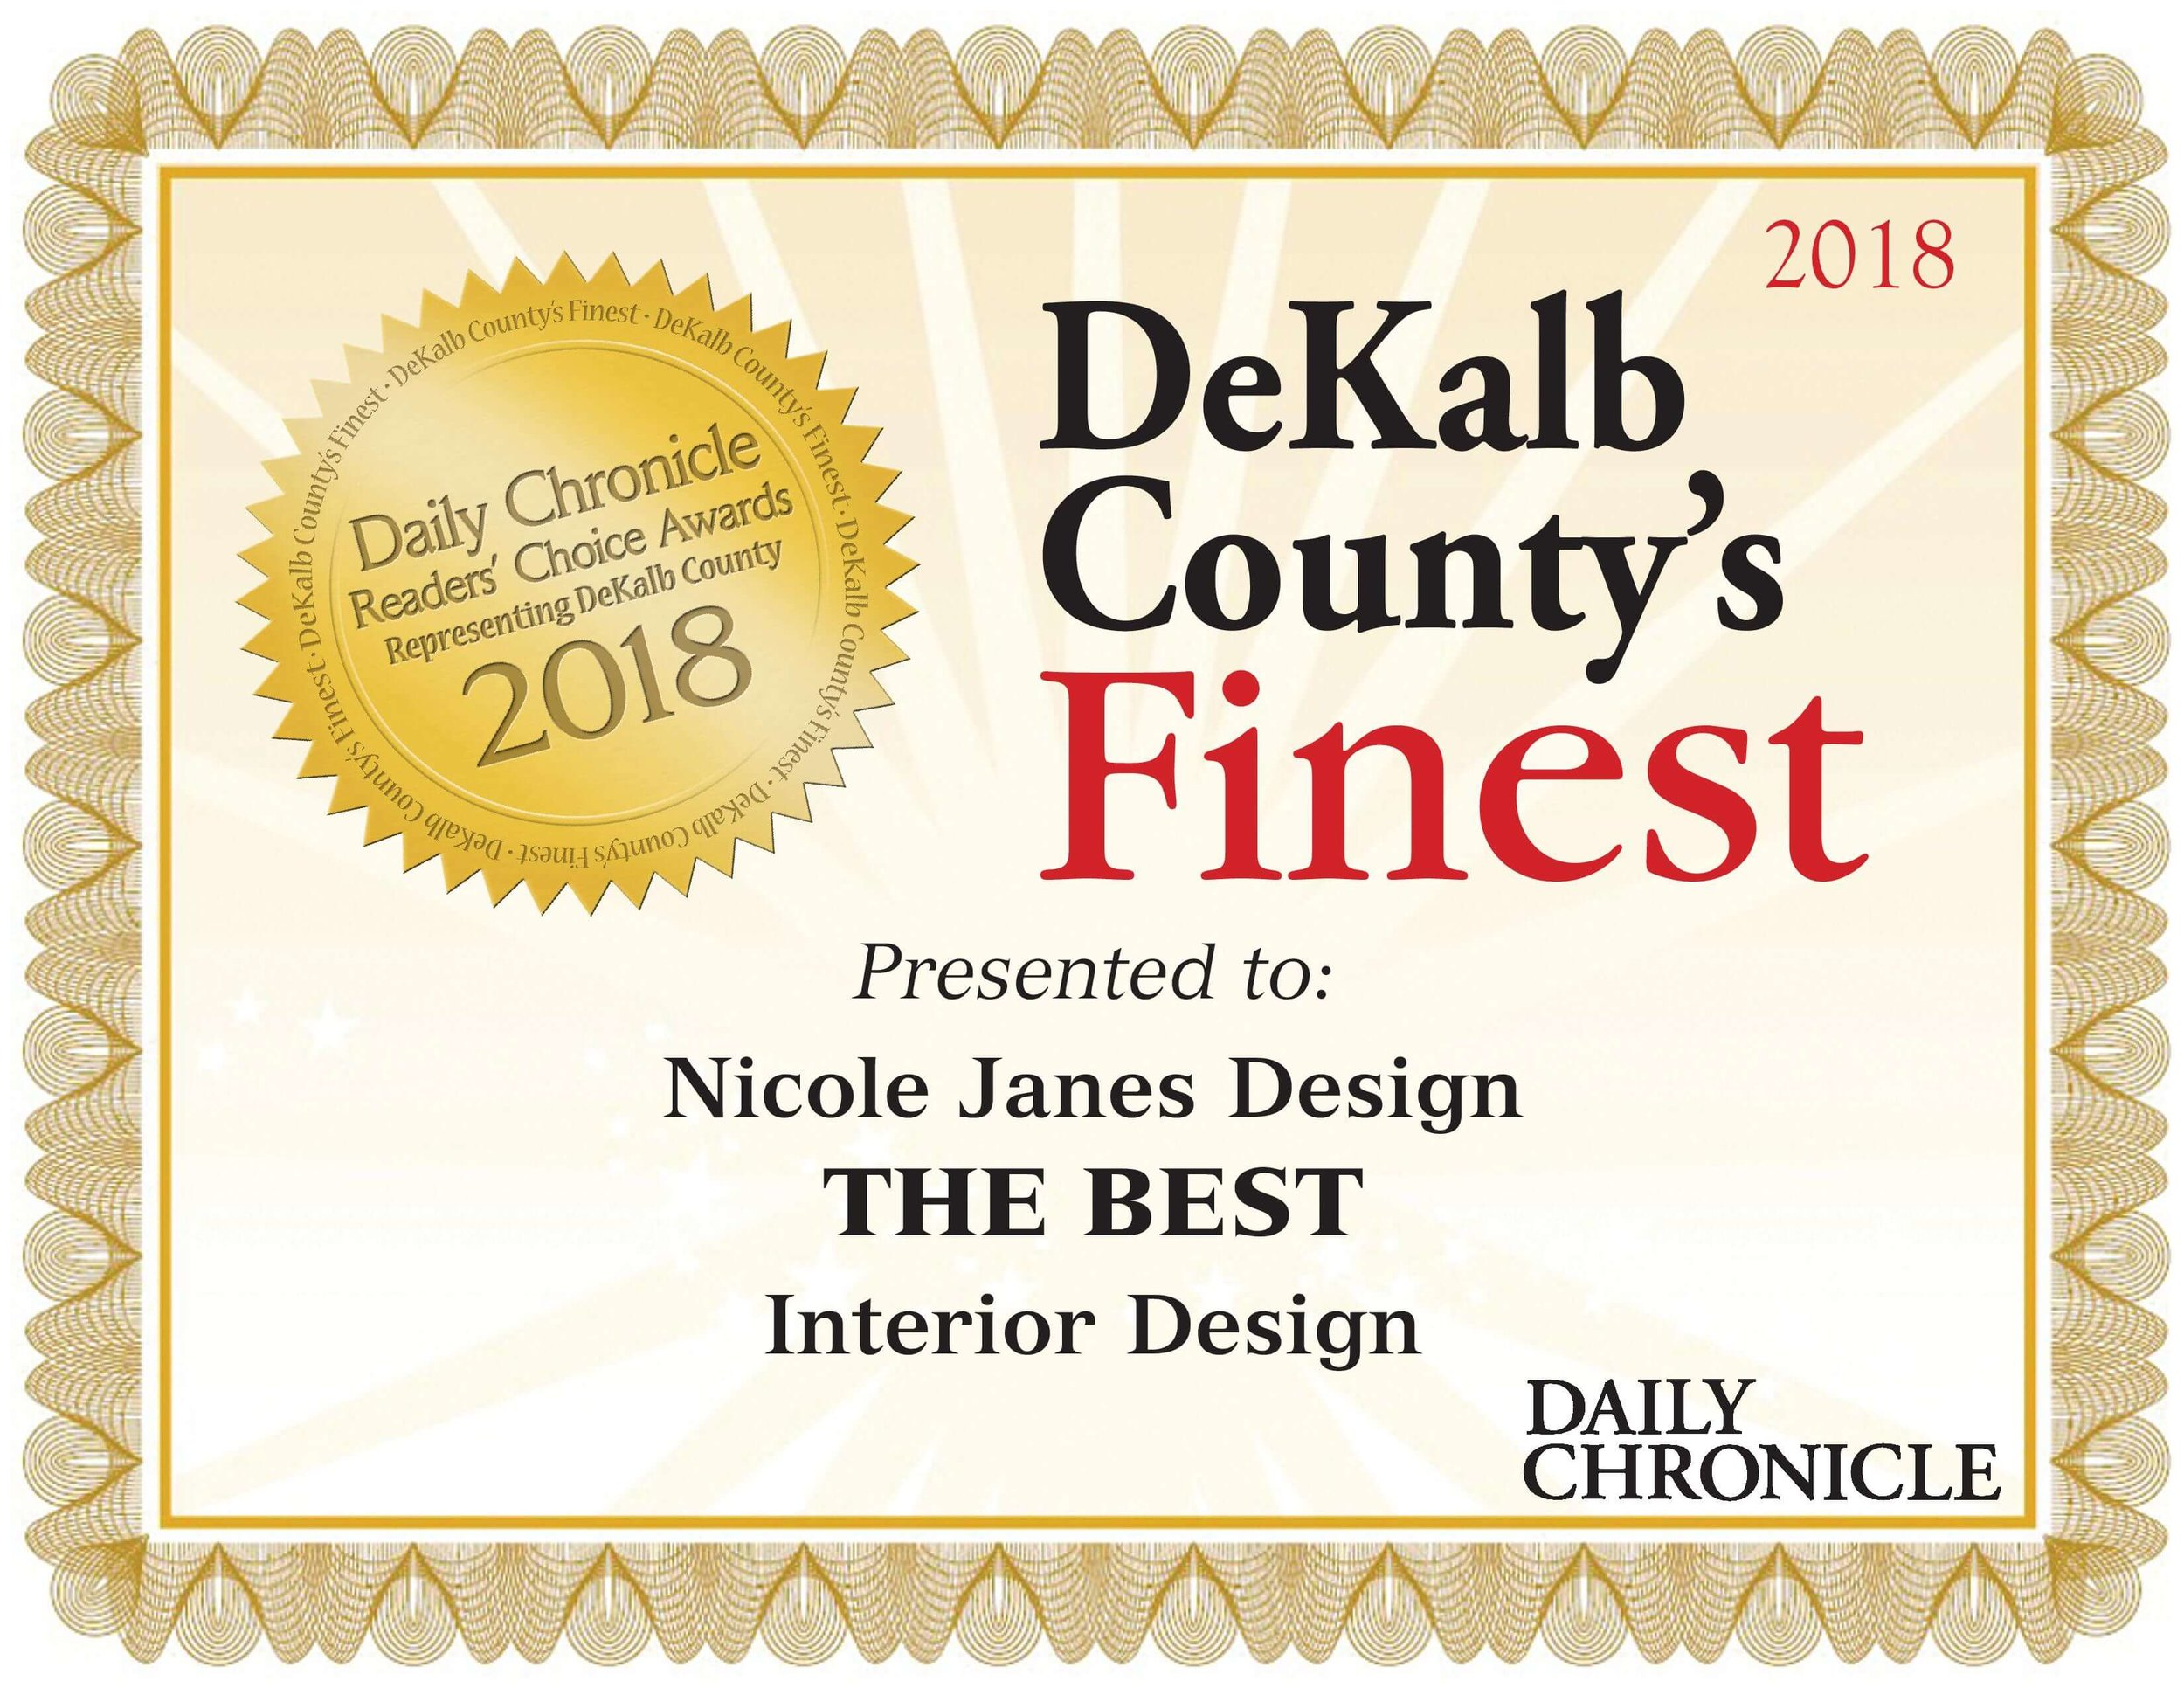 Nicole Janes Design 2018 Dekalb Countys Finest Interior Design Award.jpg